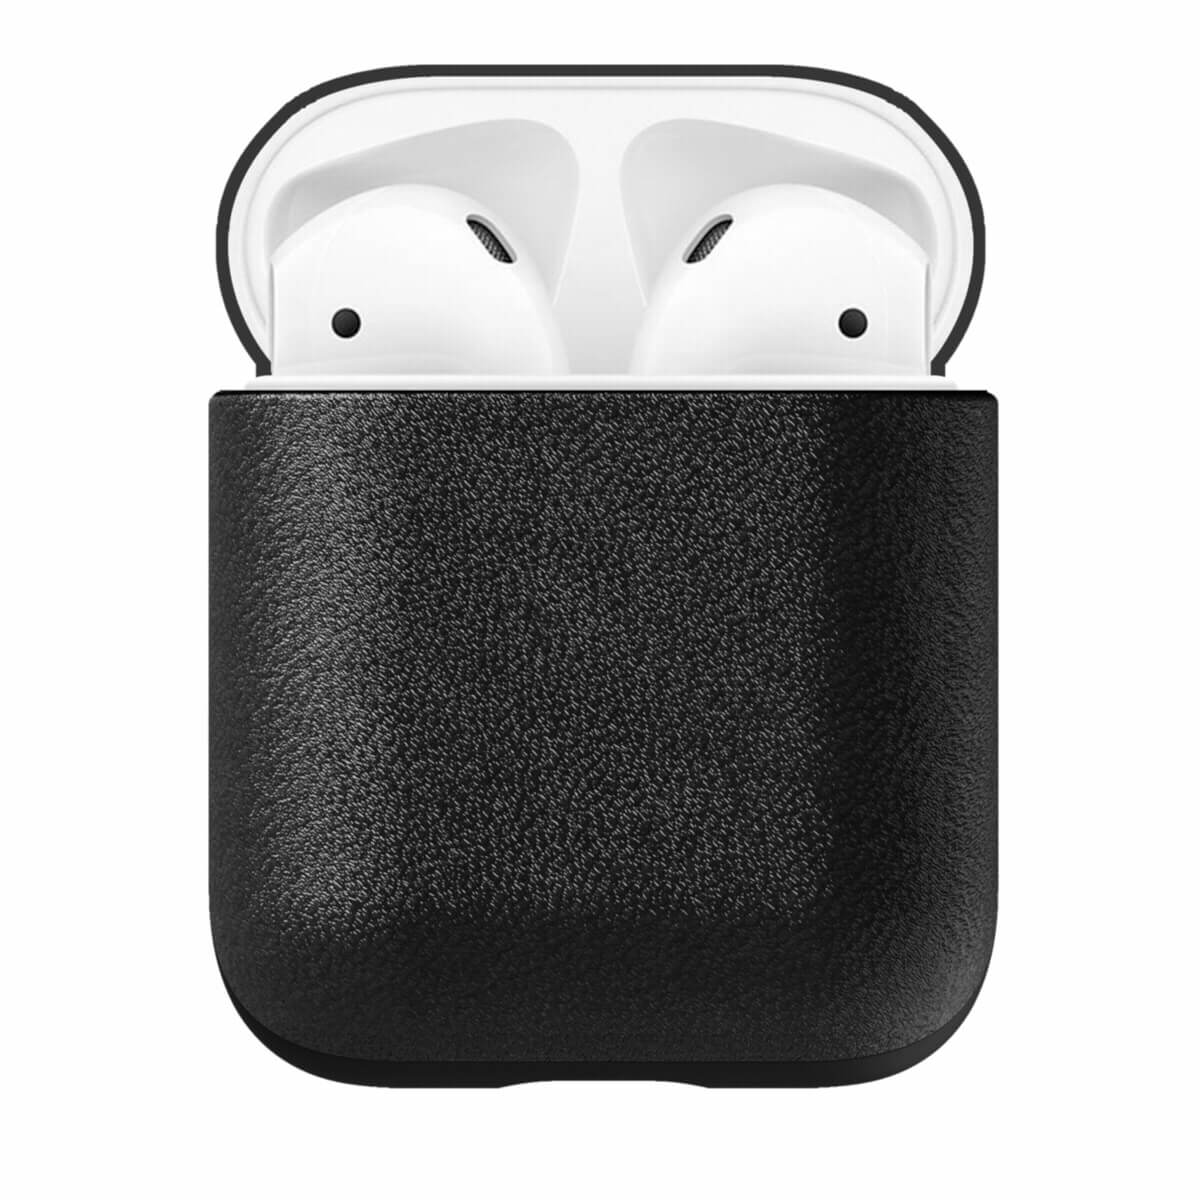 Nomad Leather Case for Apple Airpods (black)